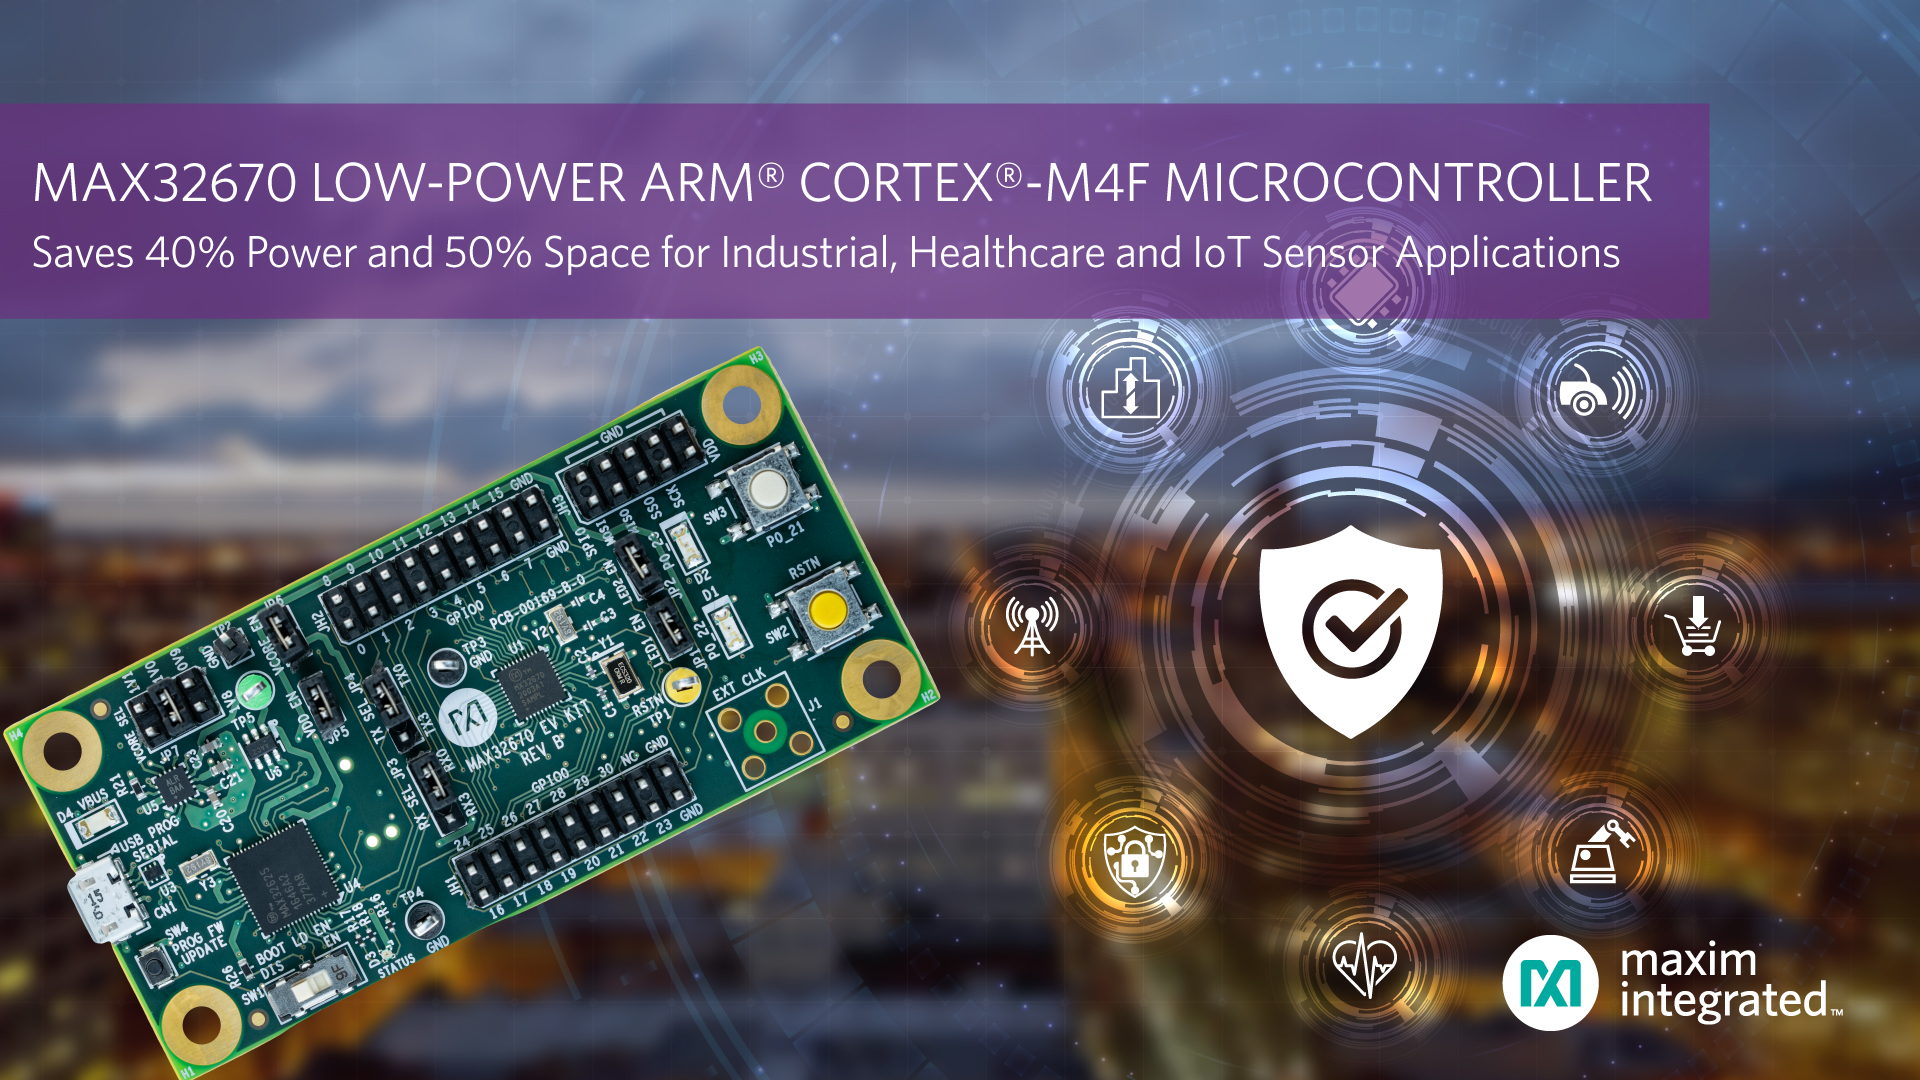 Ultra-Reliable Arm Cortex-M4F Microcontroller from Maxim Integrated Offers Industry's Lowest Power Consumption and Smallest Size for Industrial, Healthcare and IoT Sensor Applications